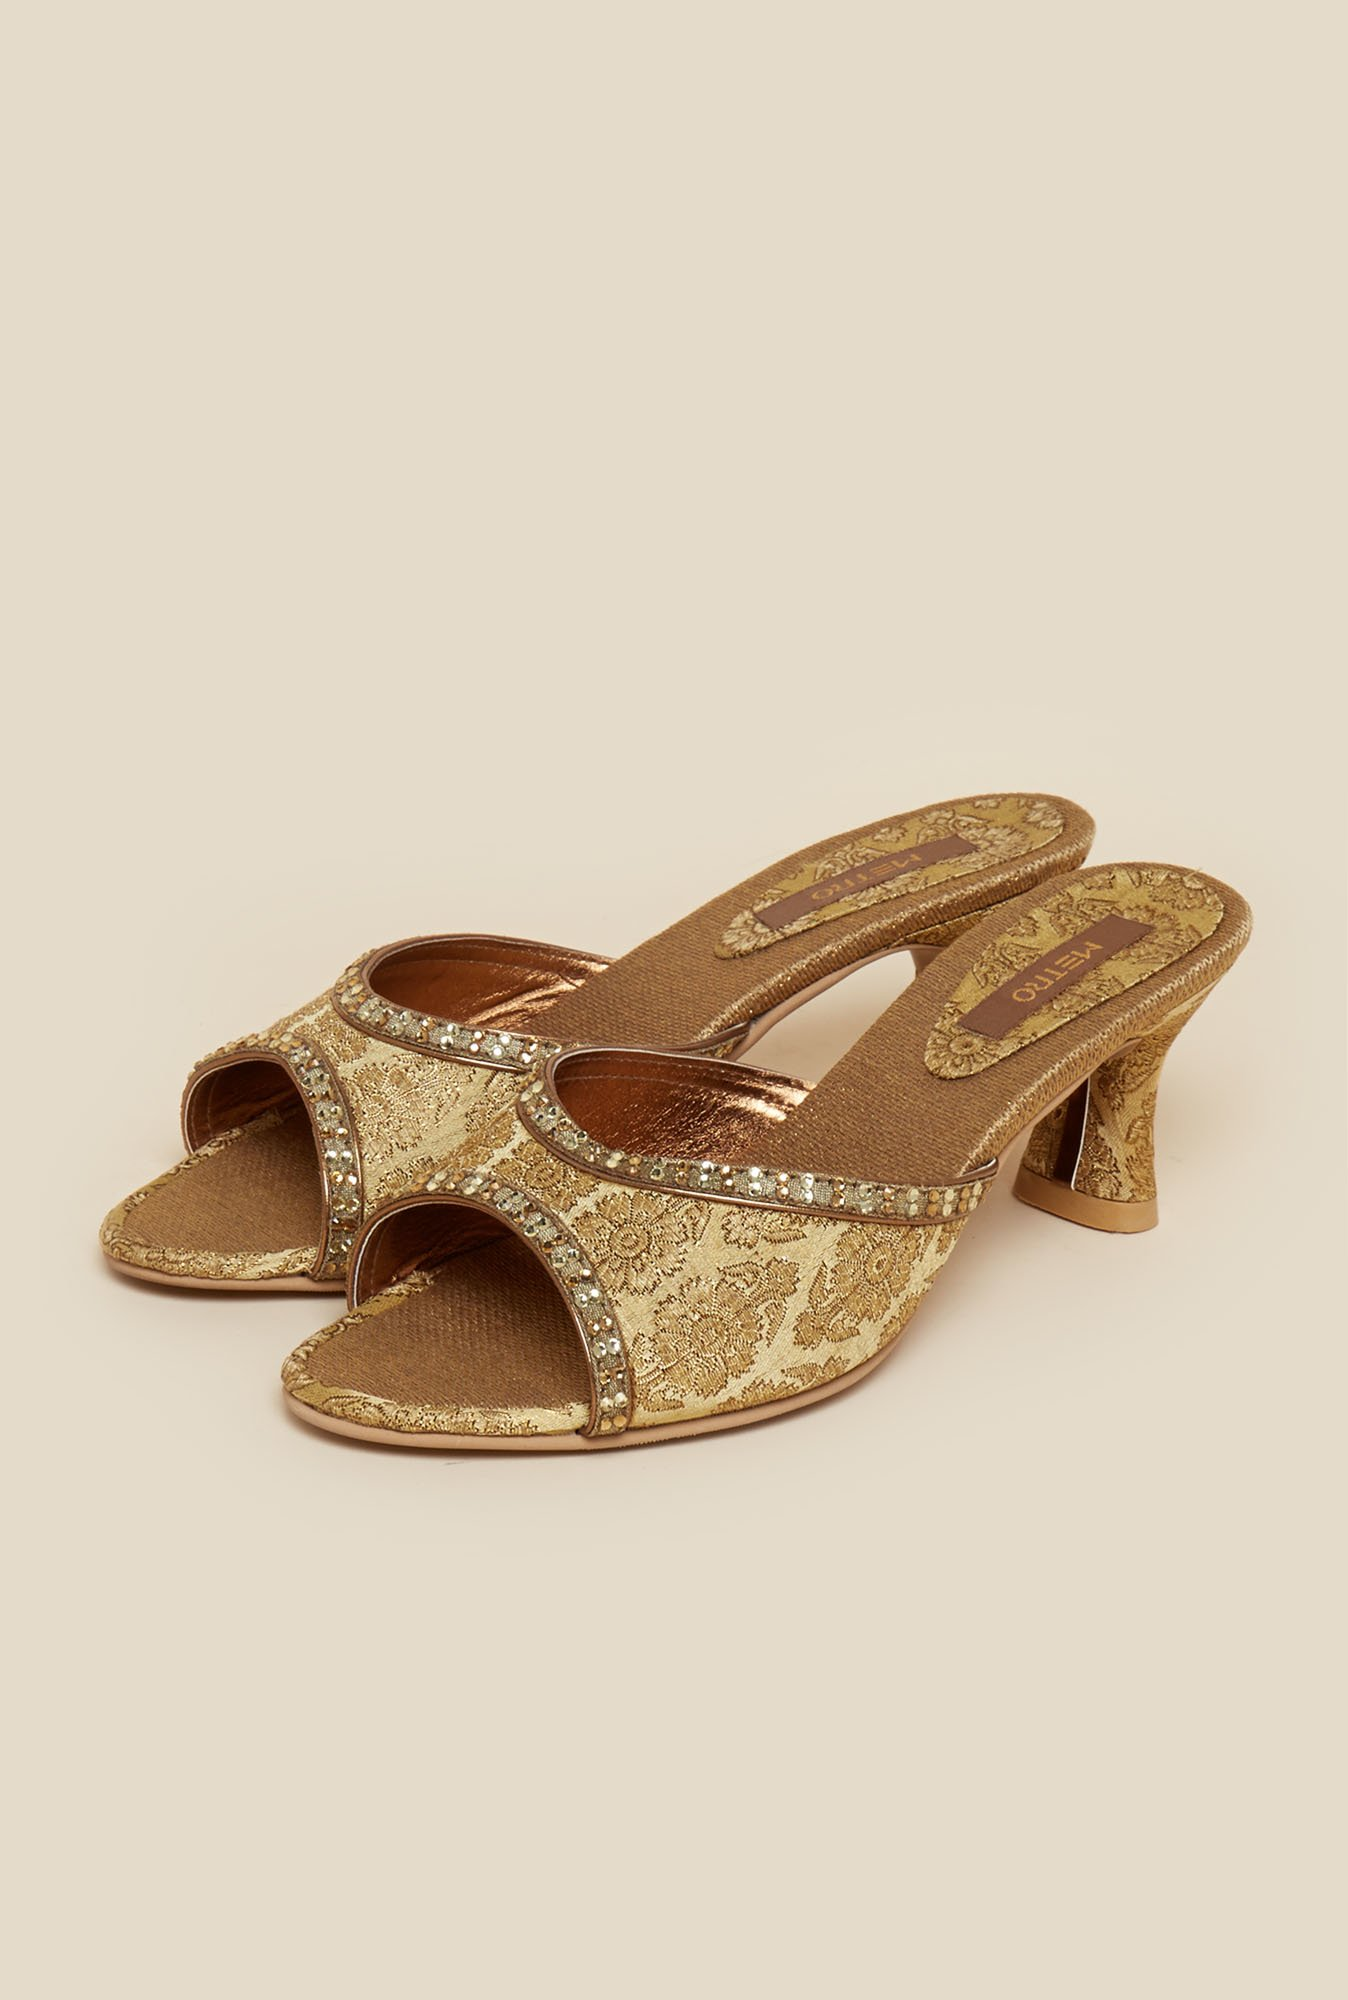 Metro Antique Gold Sandals